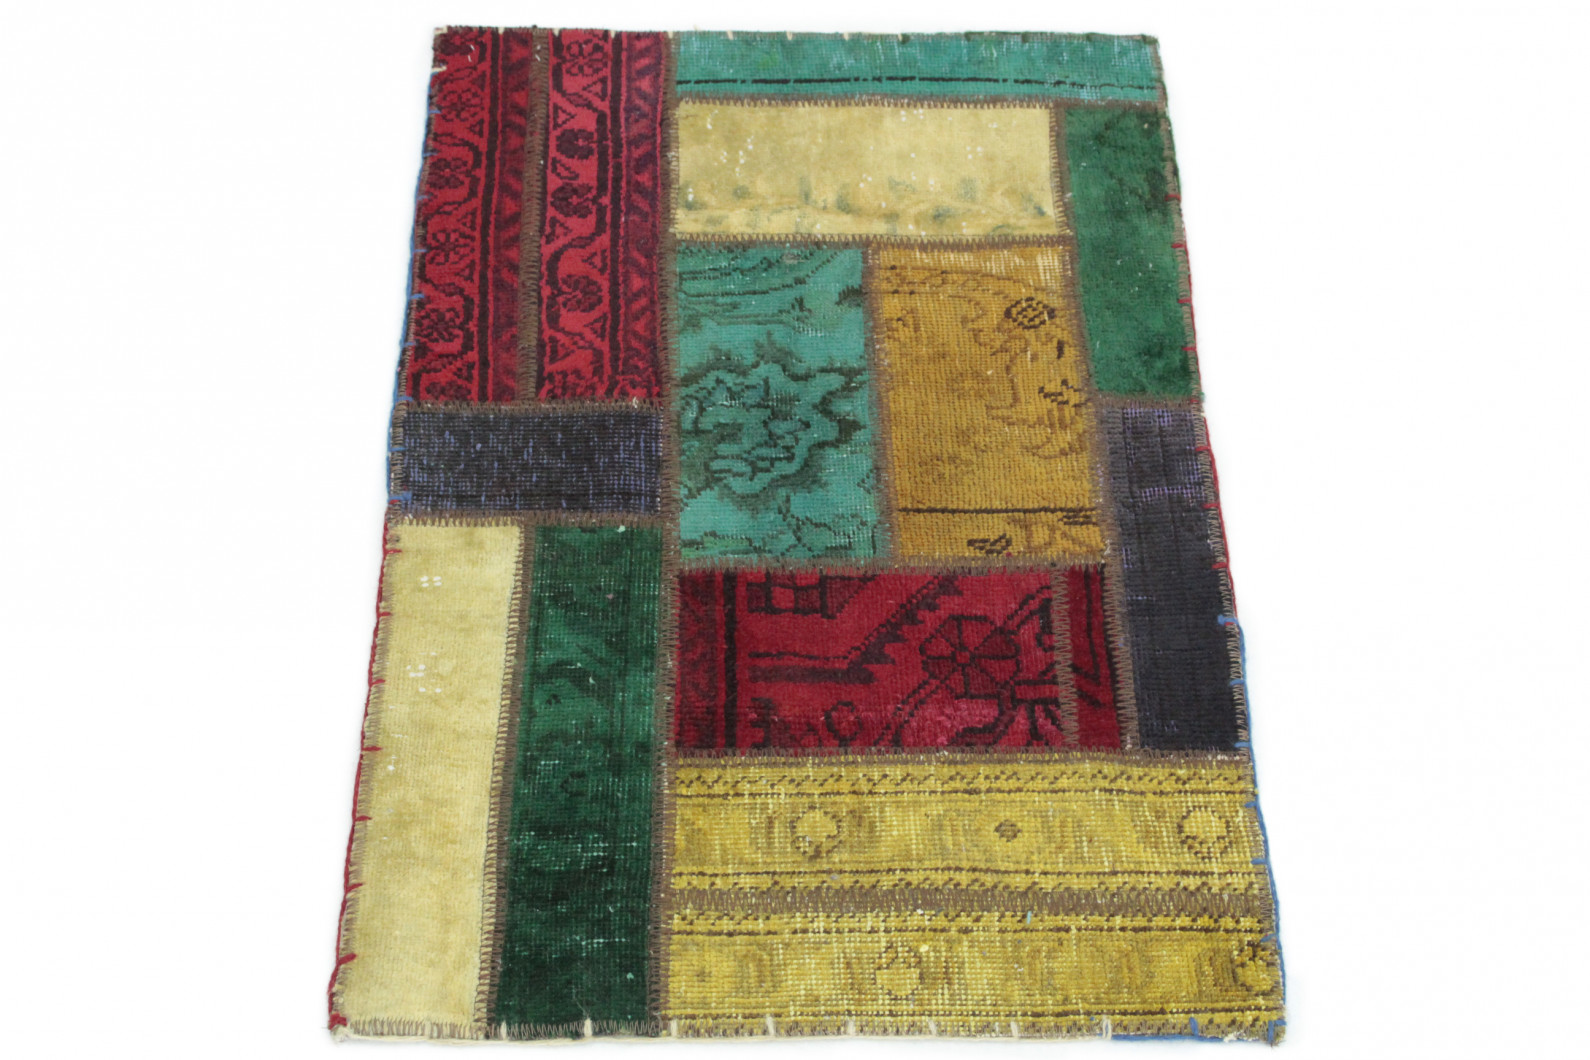 Patchwork Rug Yellow Beige Red Turquoise Purple In 90x60